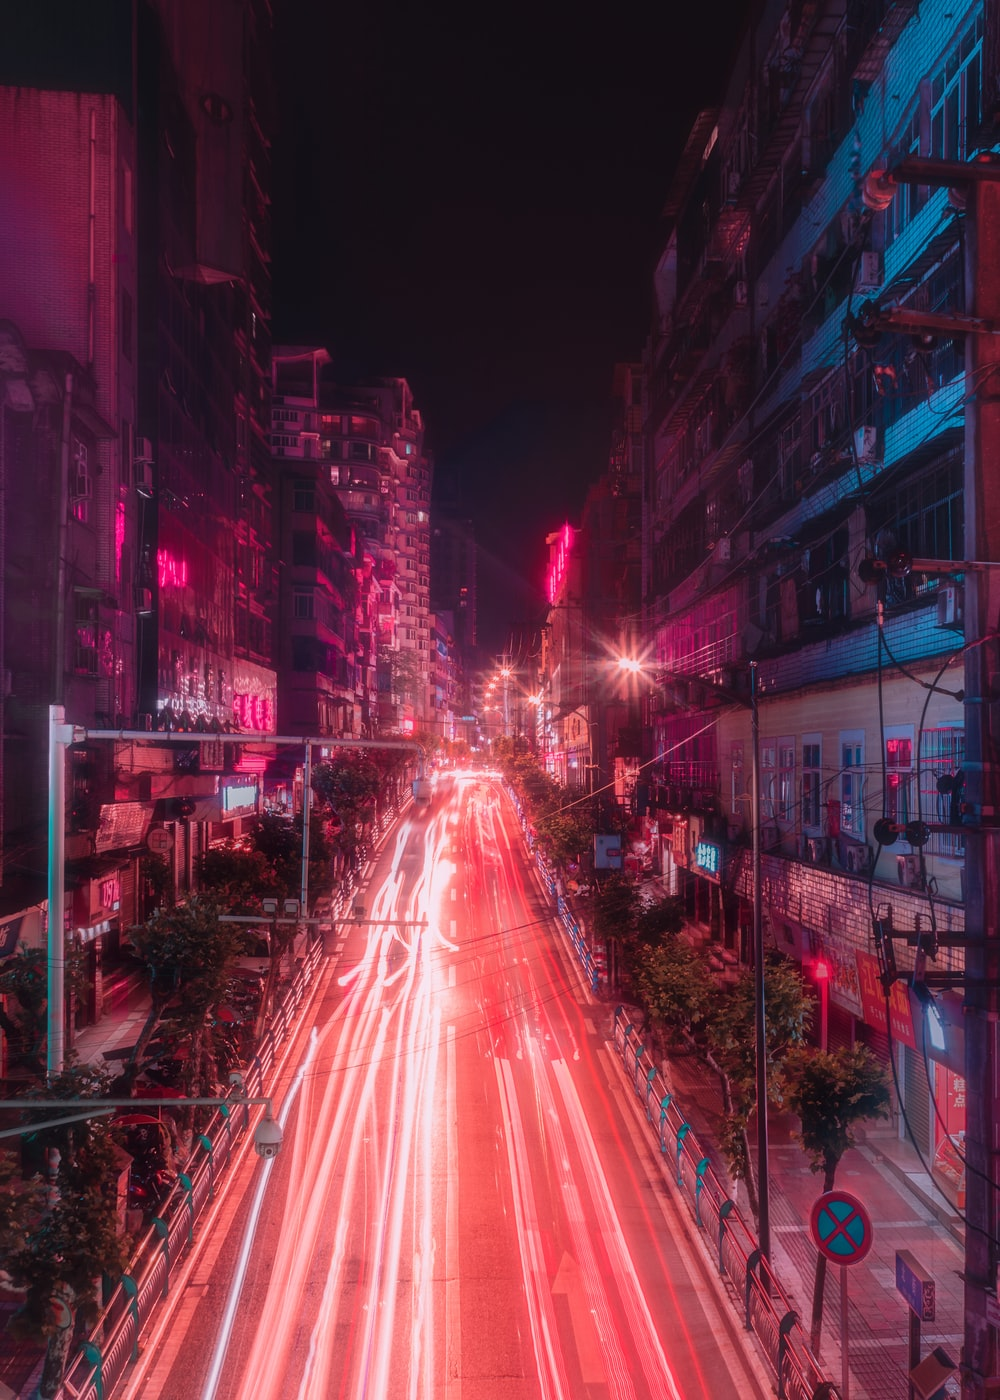 time lapse photography of street at night